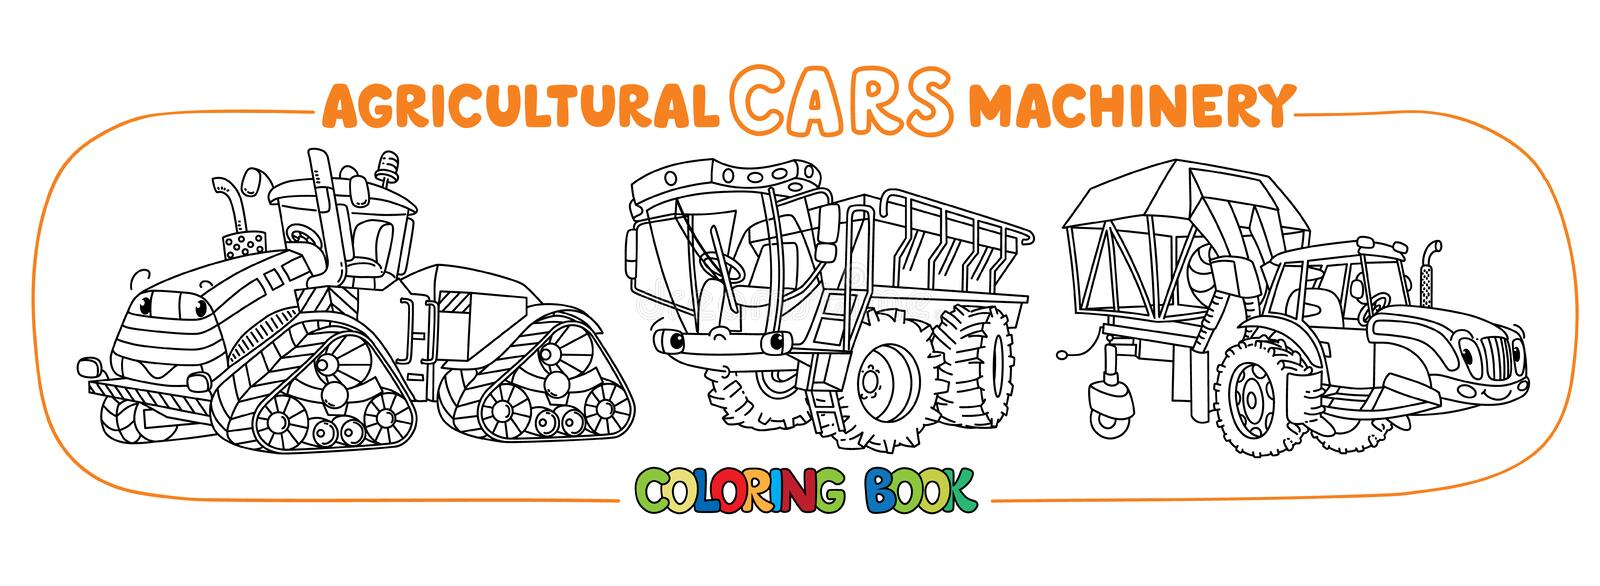 Agricultural Machinery Cute Cars Coloring Book Set Stock Illustration Illustration Of Book Child 167383354